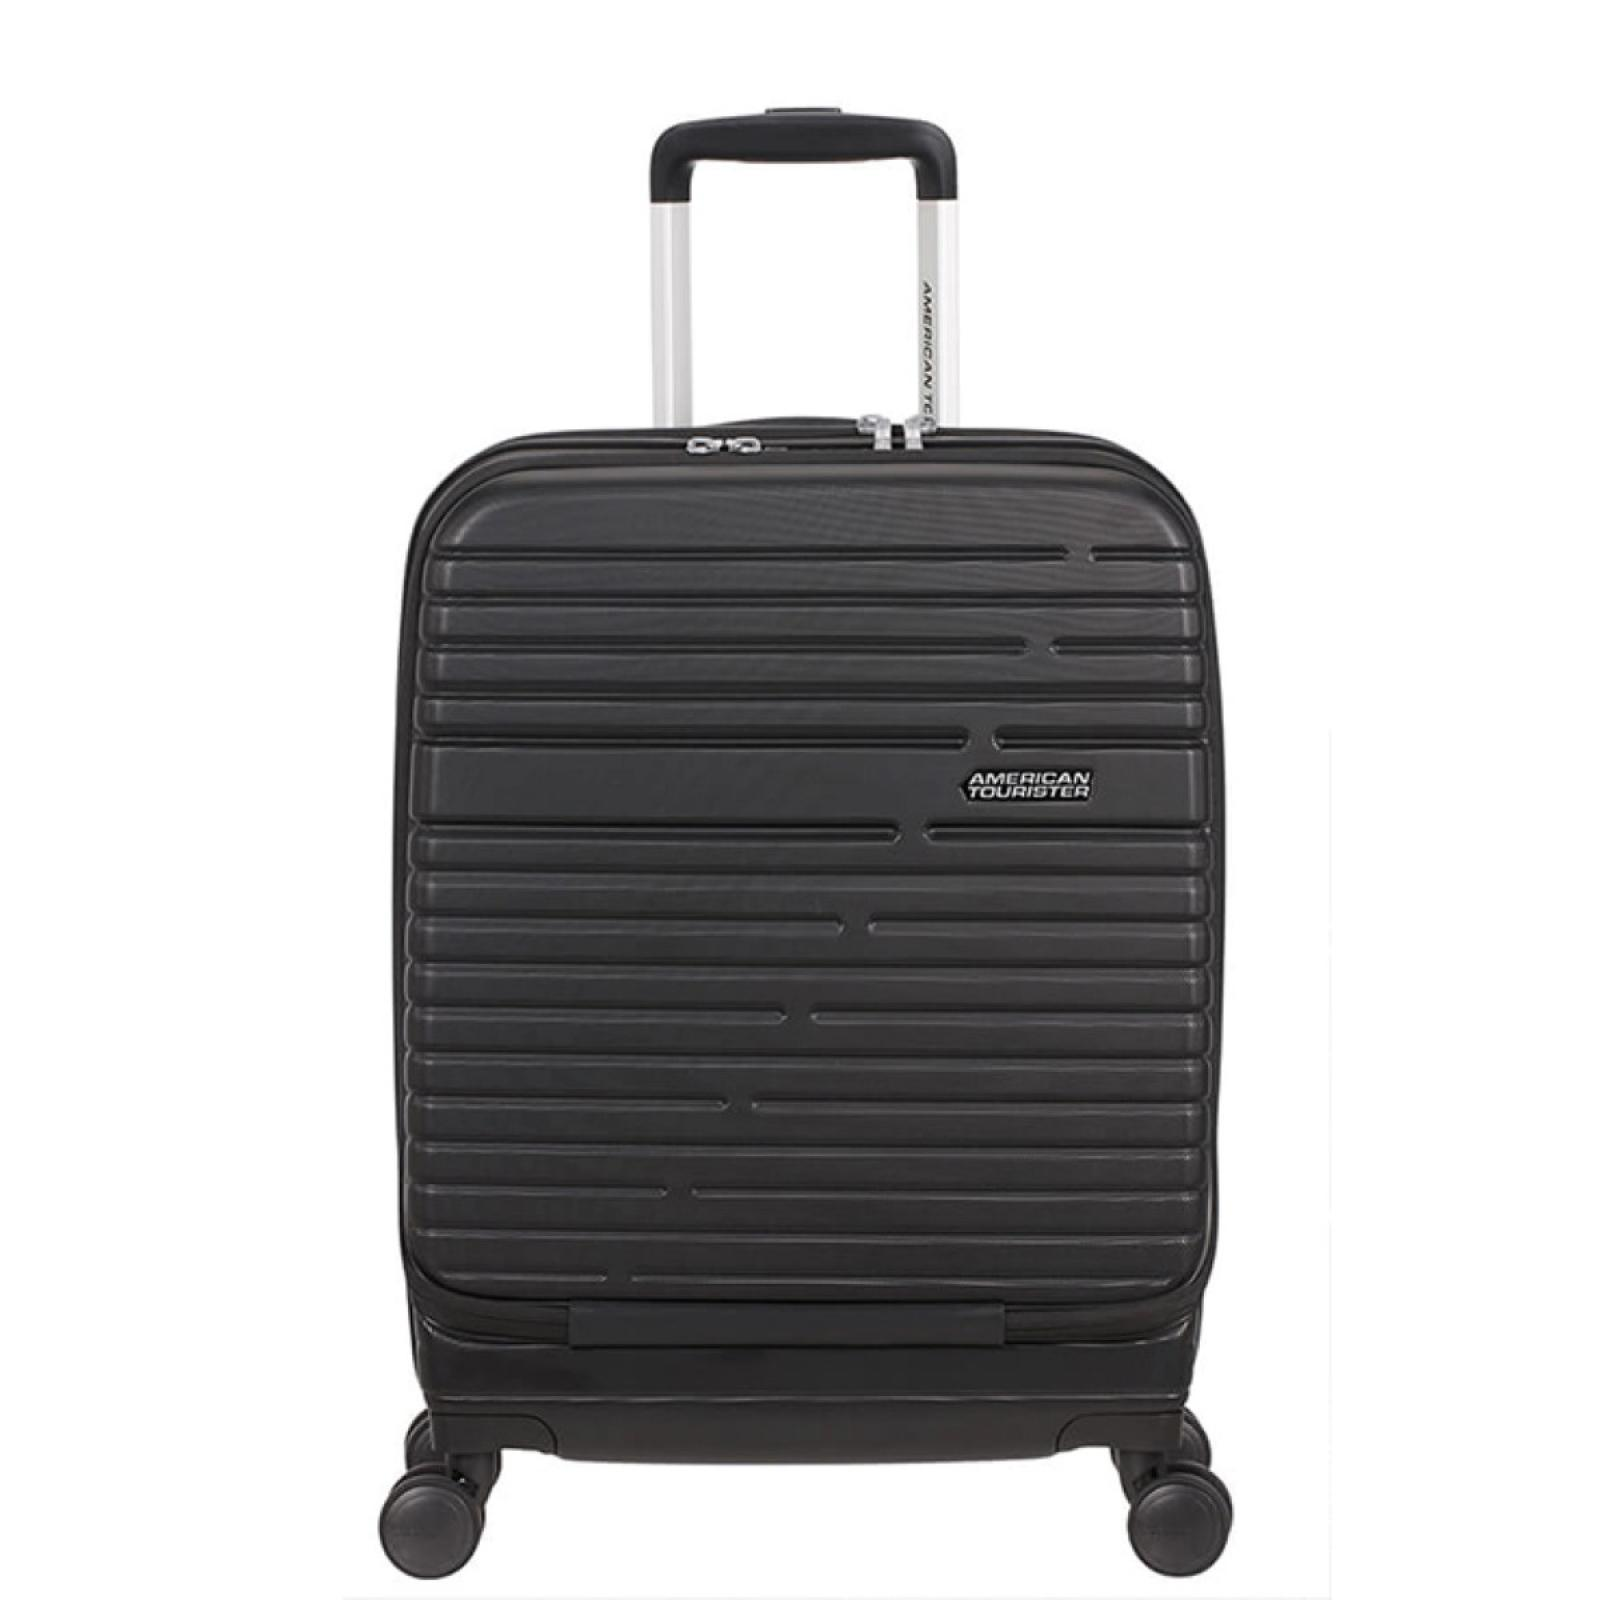 American Tourister Trolley 55/20 Spinner Aero Racer with 15.6 PC Holder - 1